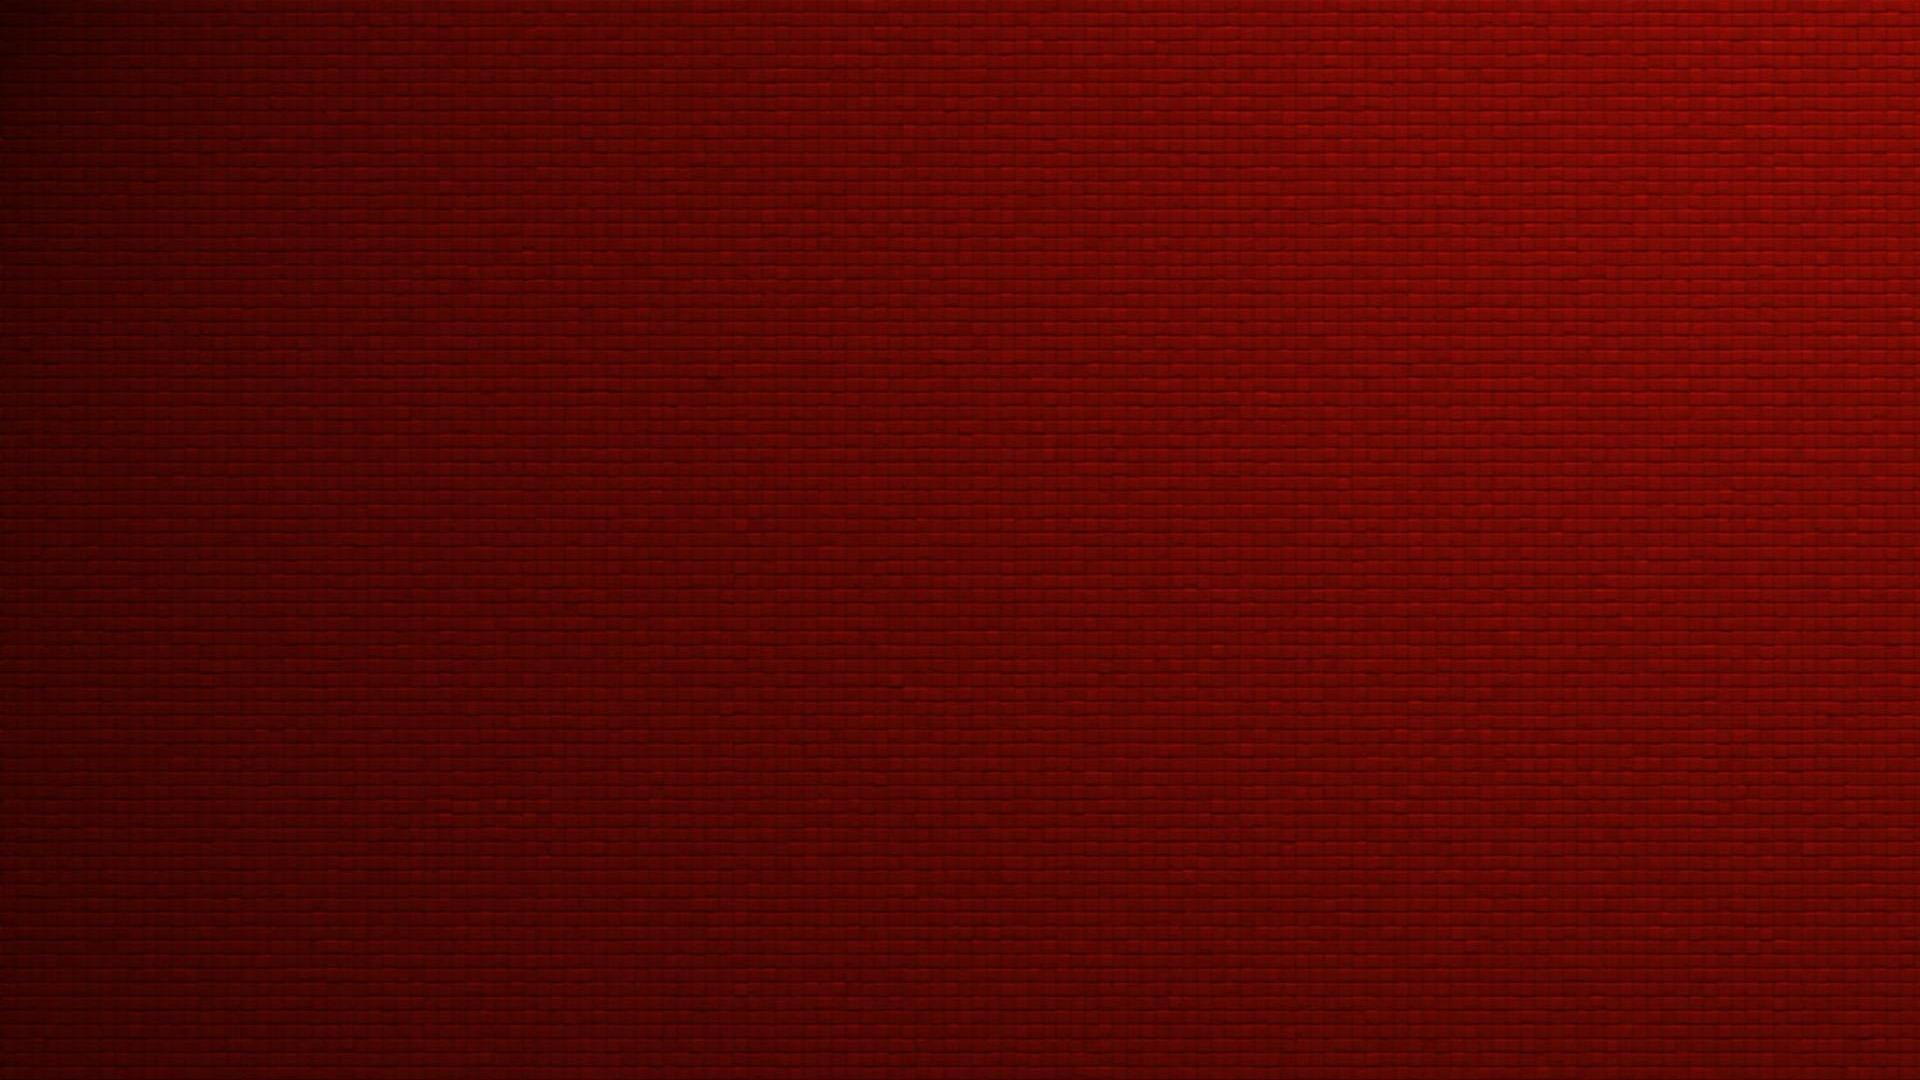 Deep Red Wallpapers 1920x1080